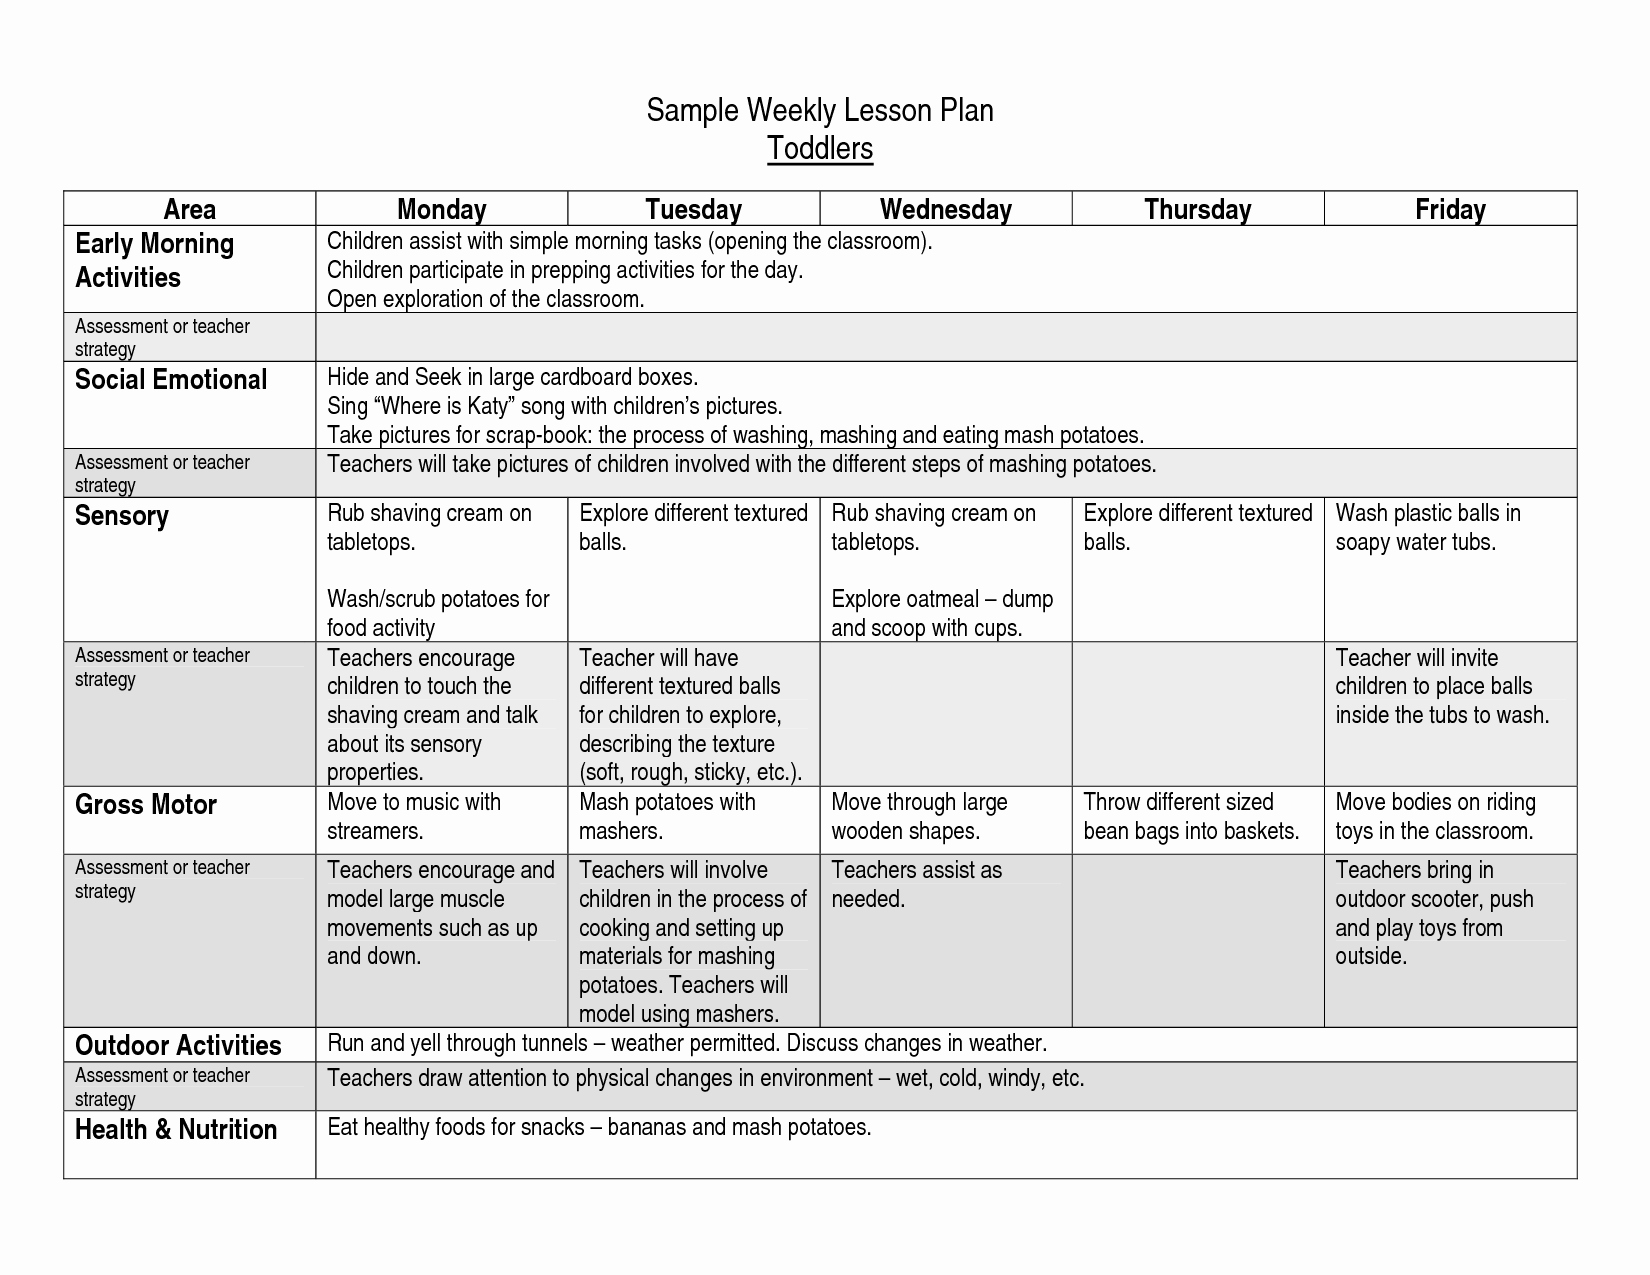 Lesson Plans for toddlers Template Beautiful Infant toddler Lesson Plan Ideas On Pinterest